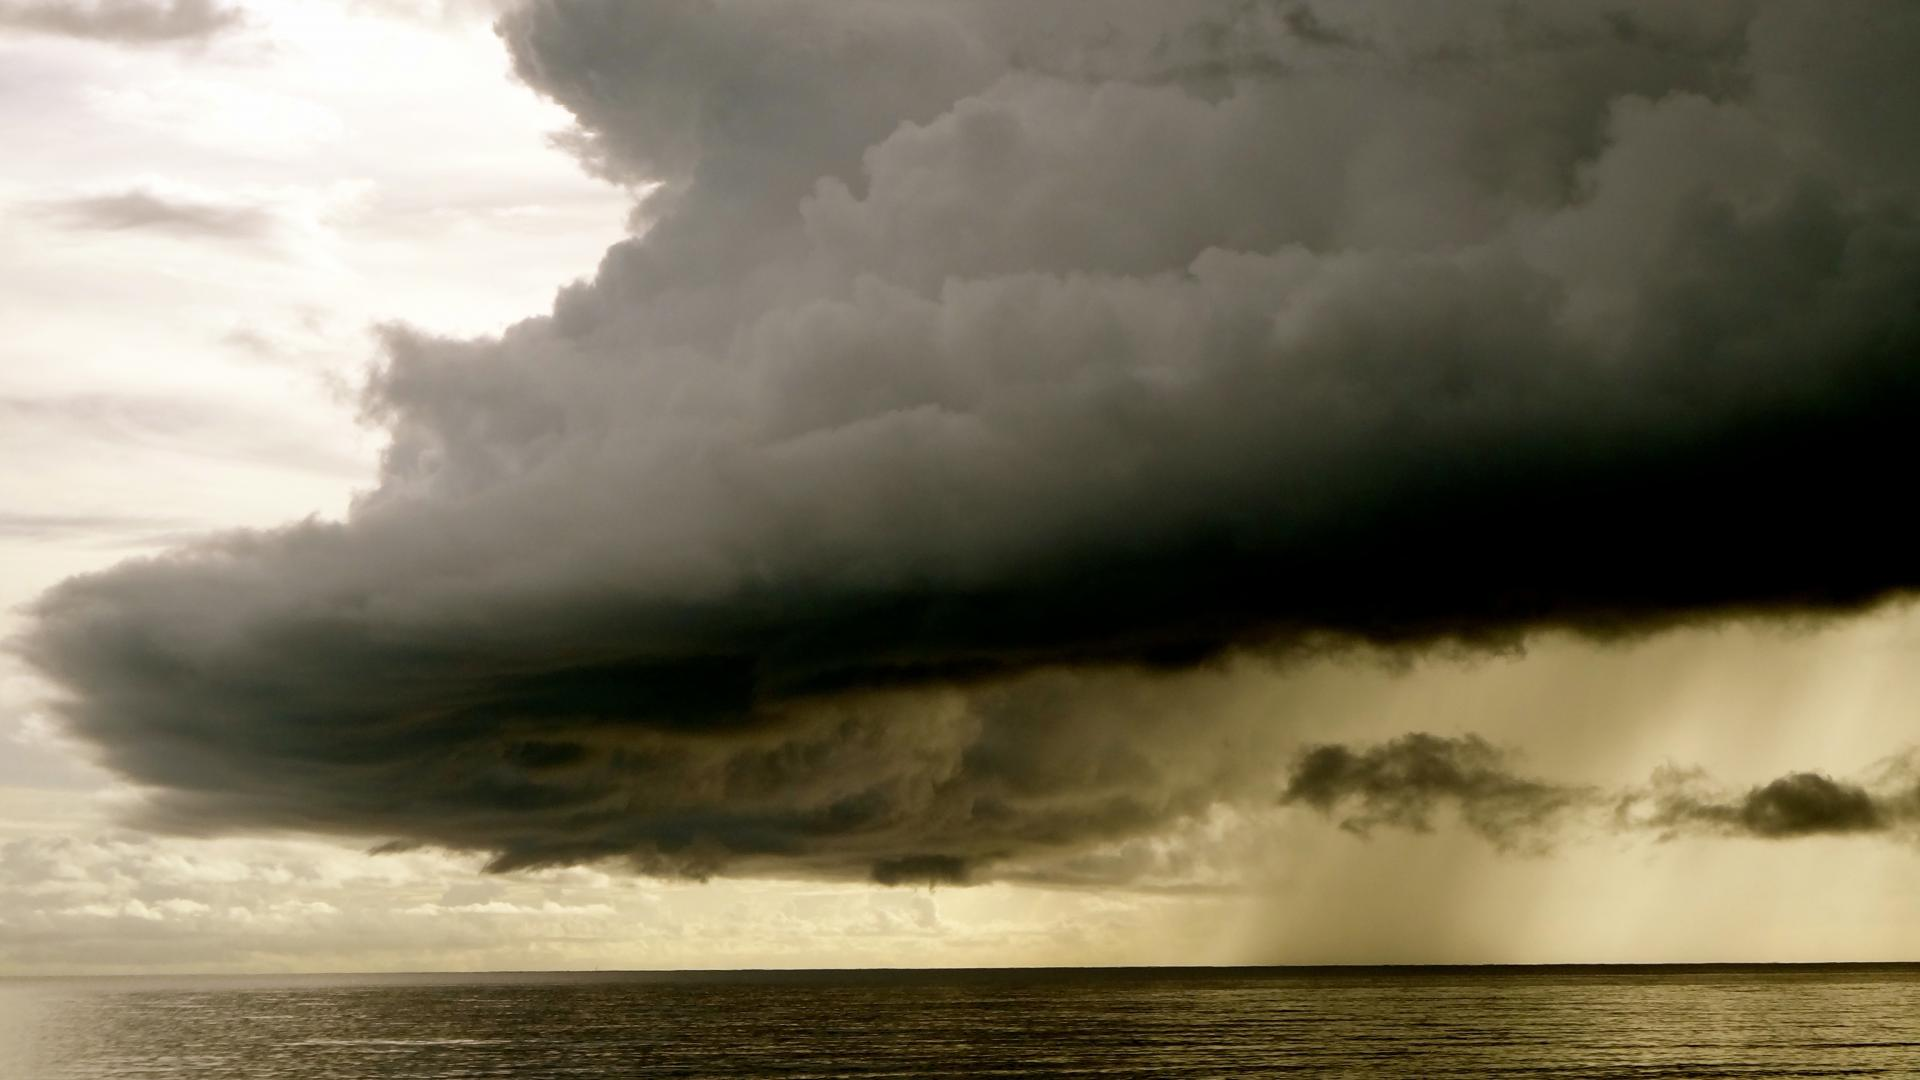 A storm cloud at sea